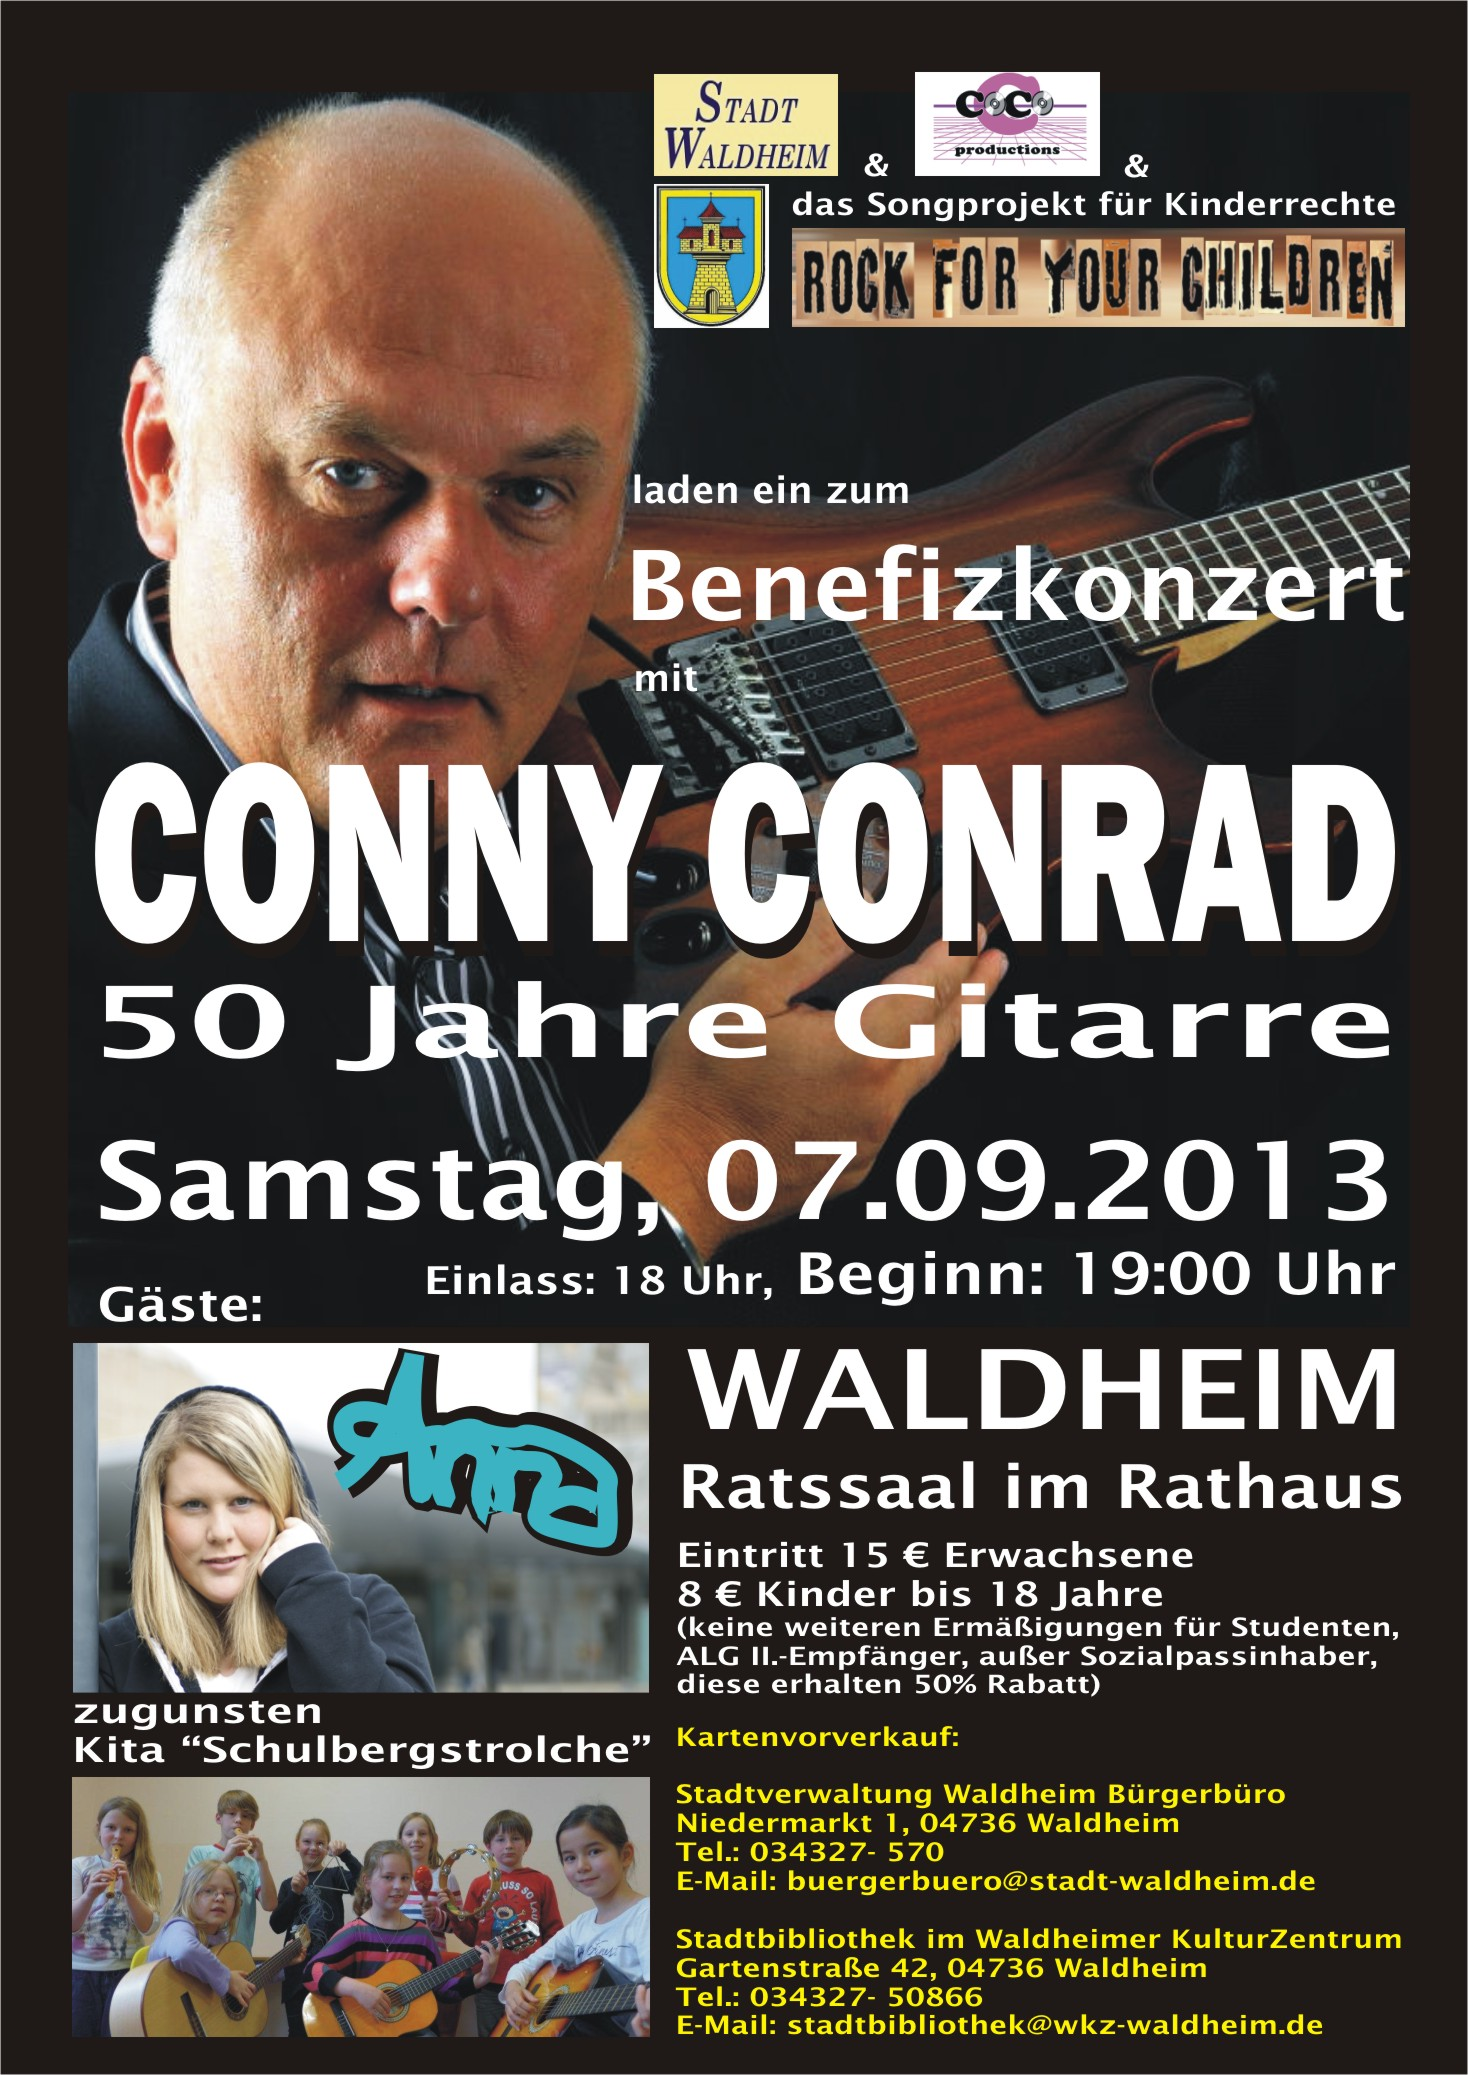 CONNY CONRAD LIVE am 07.09.2013 in WALDHEIM | Rock For Your